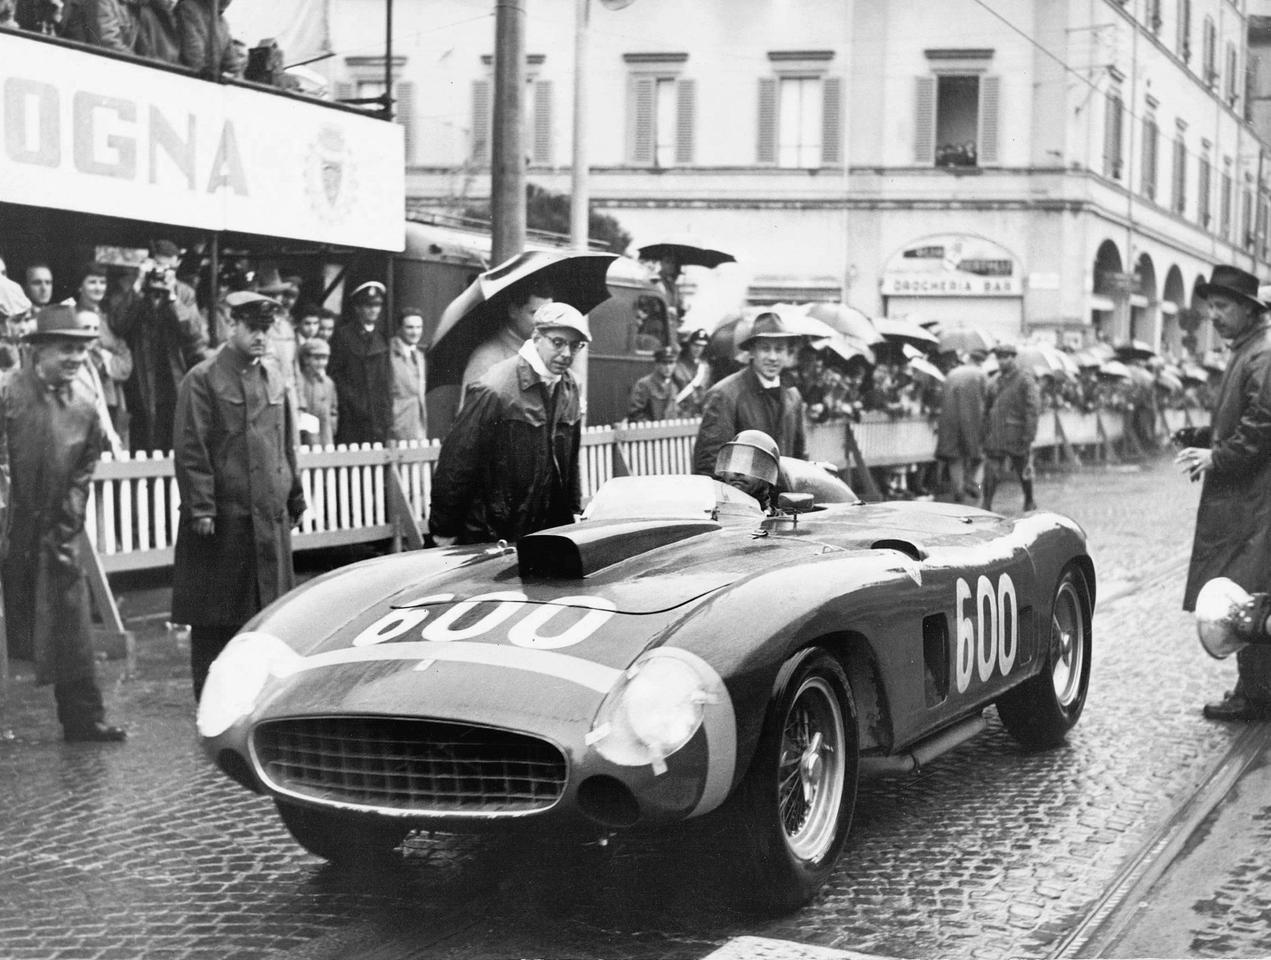 Fangio's Ferrari 290 MM fetched $28 million and became the third most expensive car ever sold, nudging out a 1967 Ferrari 275 GTB/4 S NART Spider which sold for $27,700,000 in August, 2013 during Monterey Car Week. That's Fangio in the car during the 1956 Mille Miglia